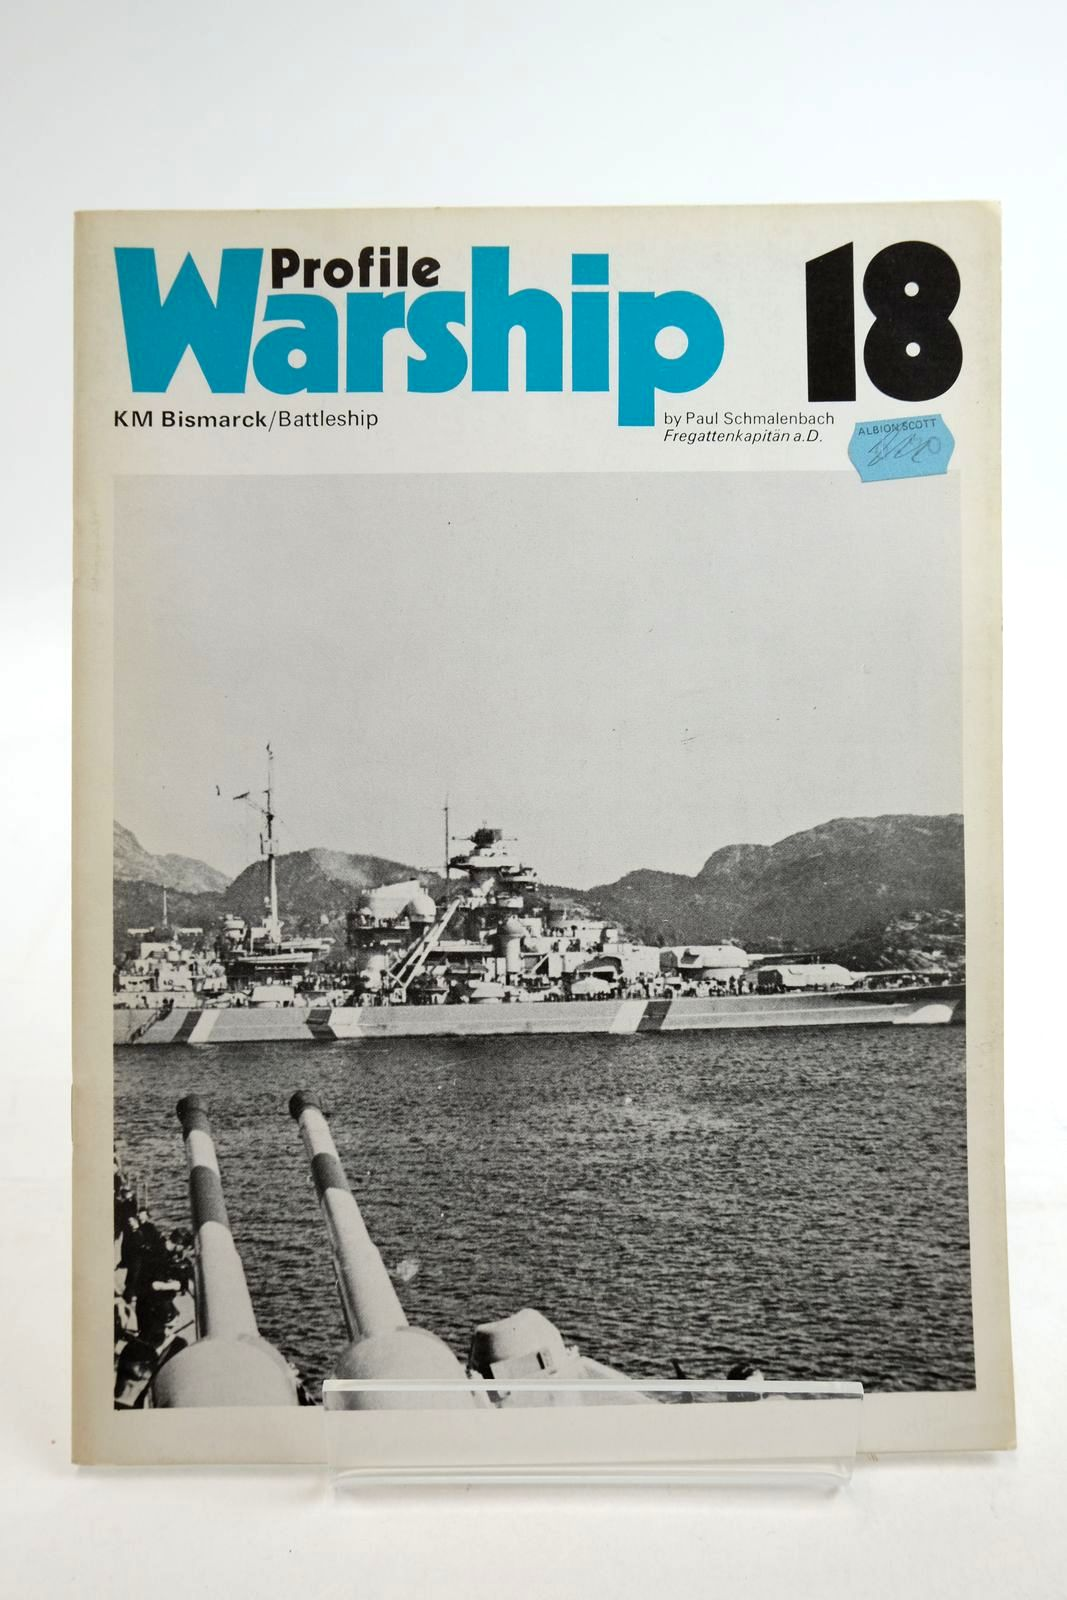 Photo of PROFILE WARSHIP 18: KM BISMARCK/BATTLESHIP written by Schmalenbach, Paul published by Profile Publications (STOCK CODE: 2134908)  for sale by Stella & Rose's Books